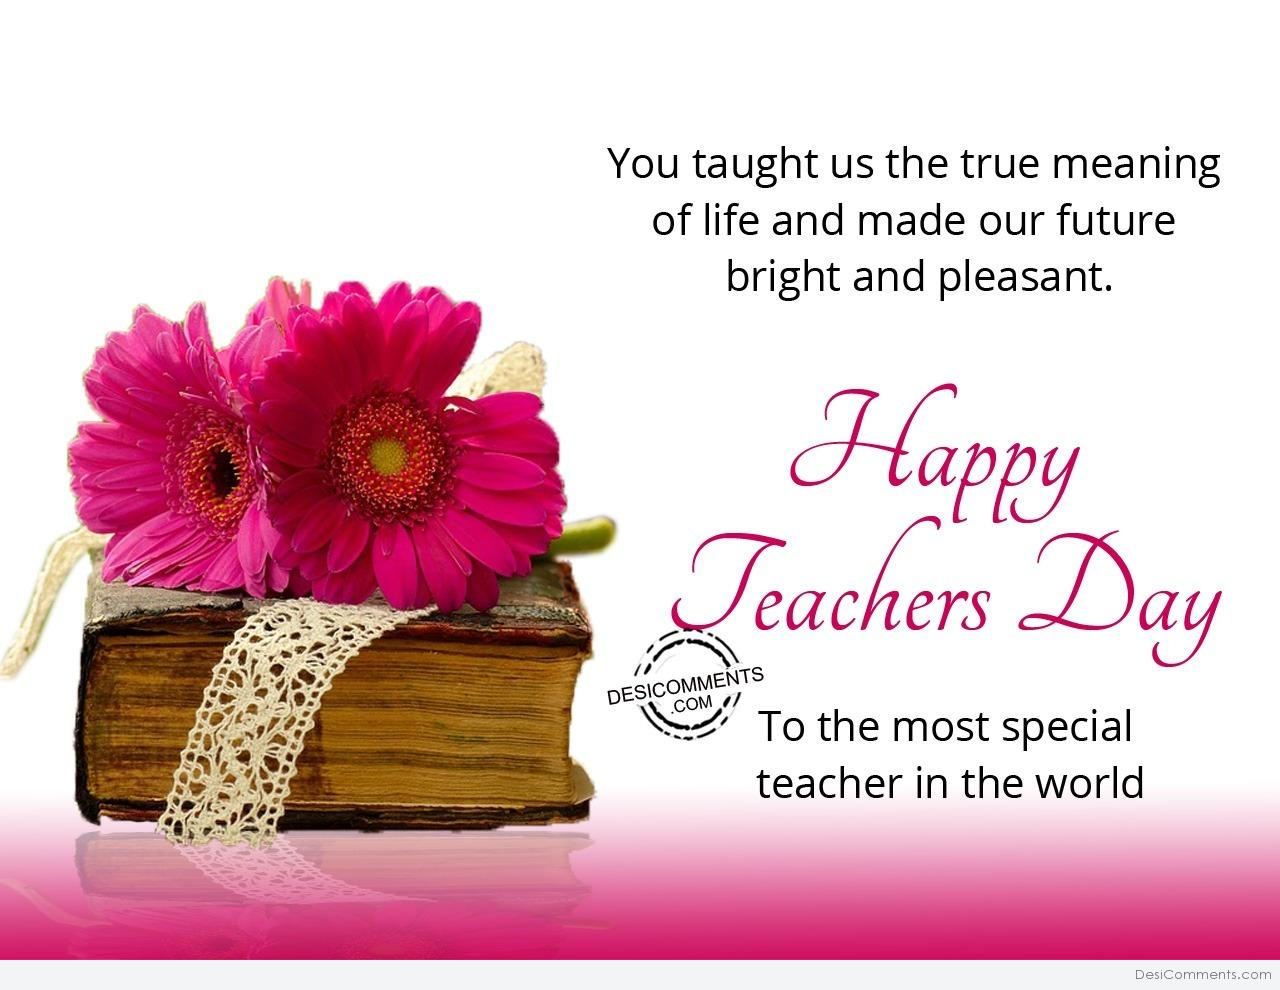 Teachers day pictures images graphics picture true meaning of life happy teachers day kristyandbryce Choice Image